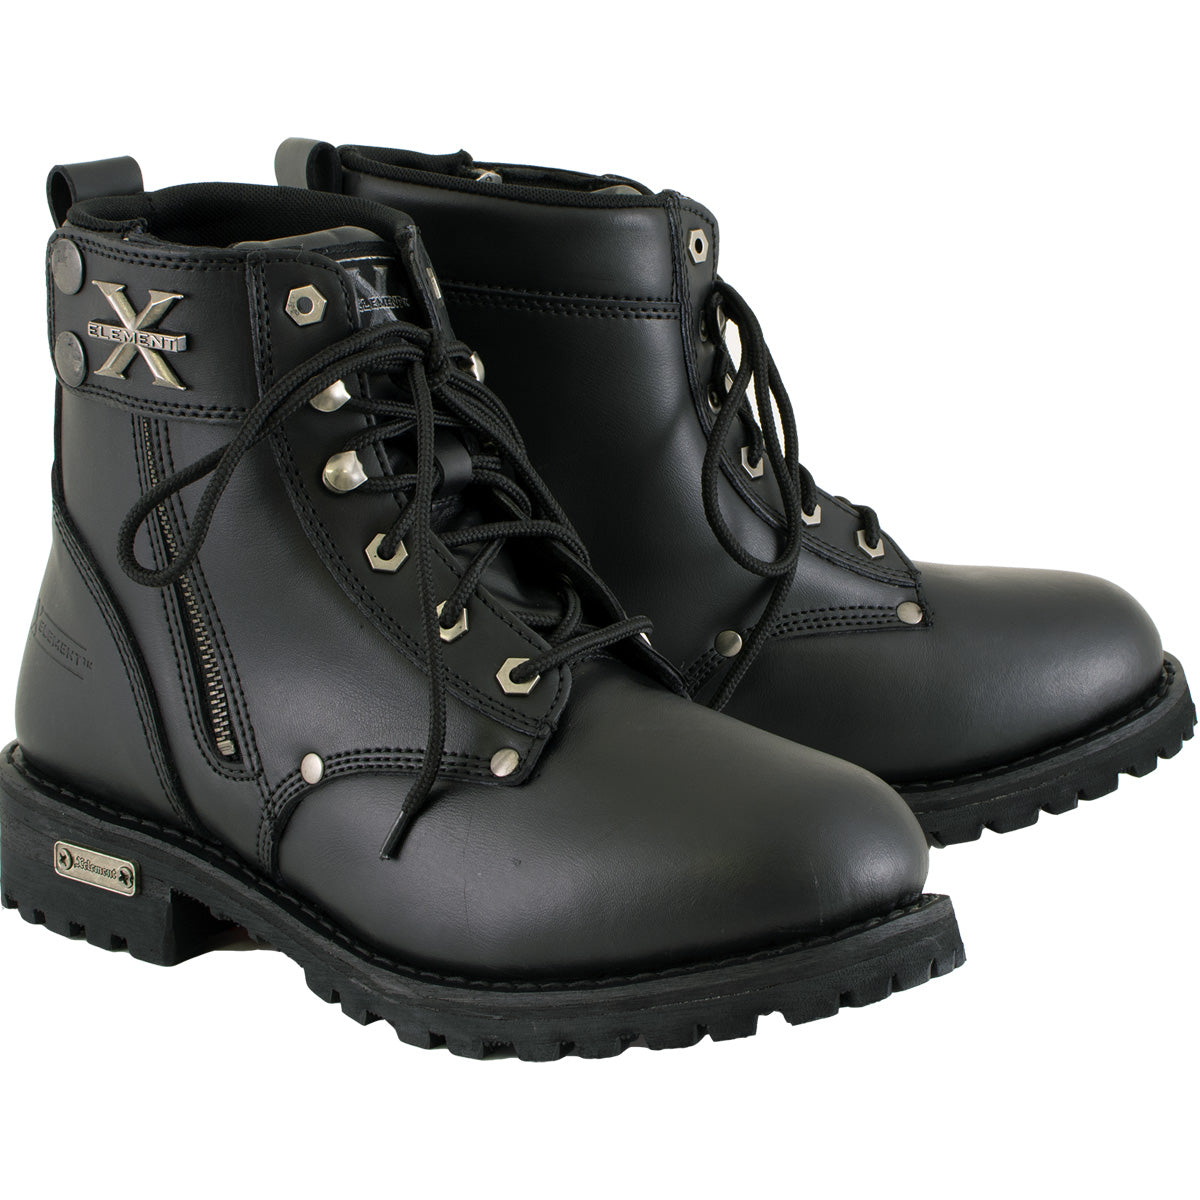 Xelement 1505 Men's Black Advanced Lace Up Motorcycle Boots